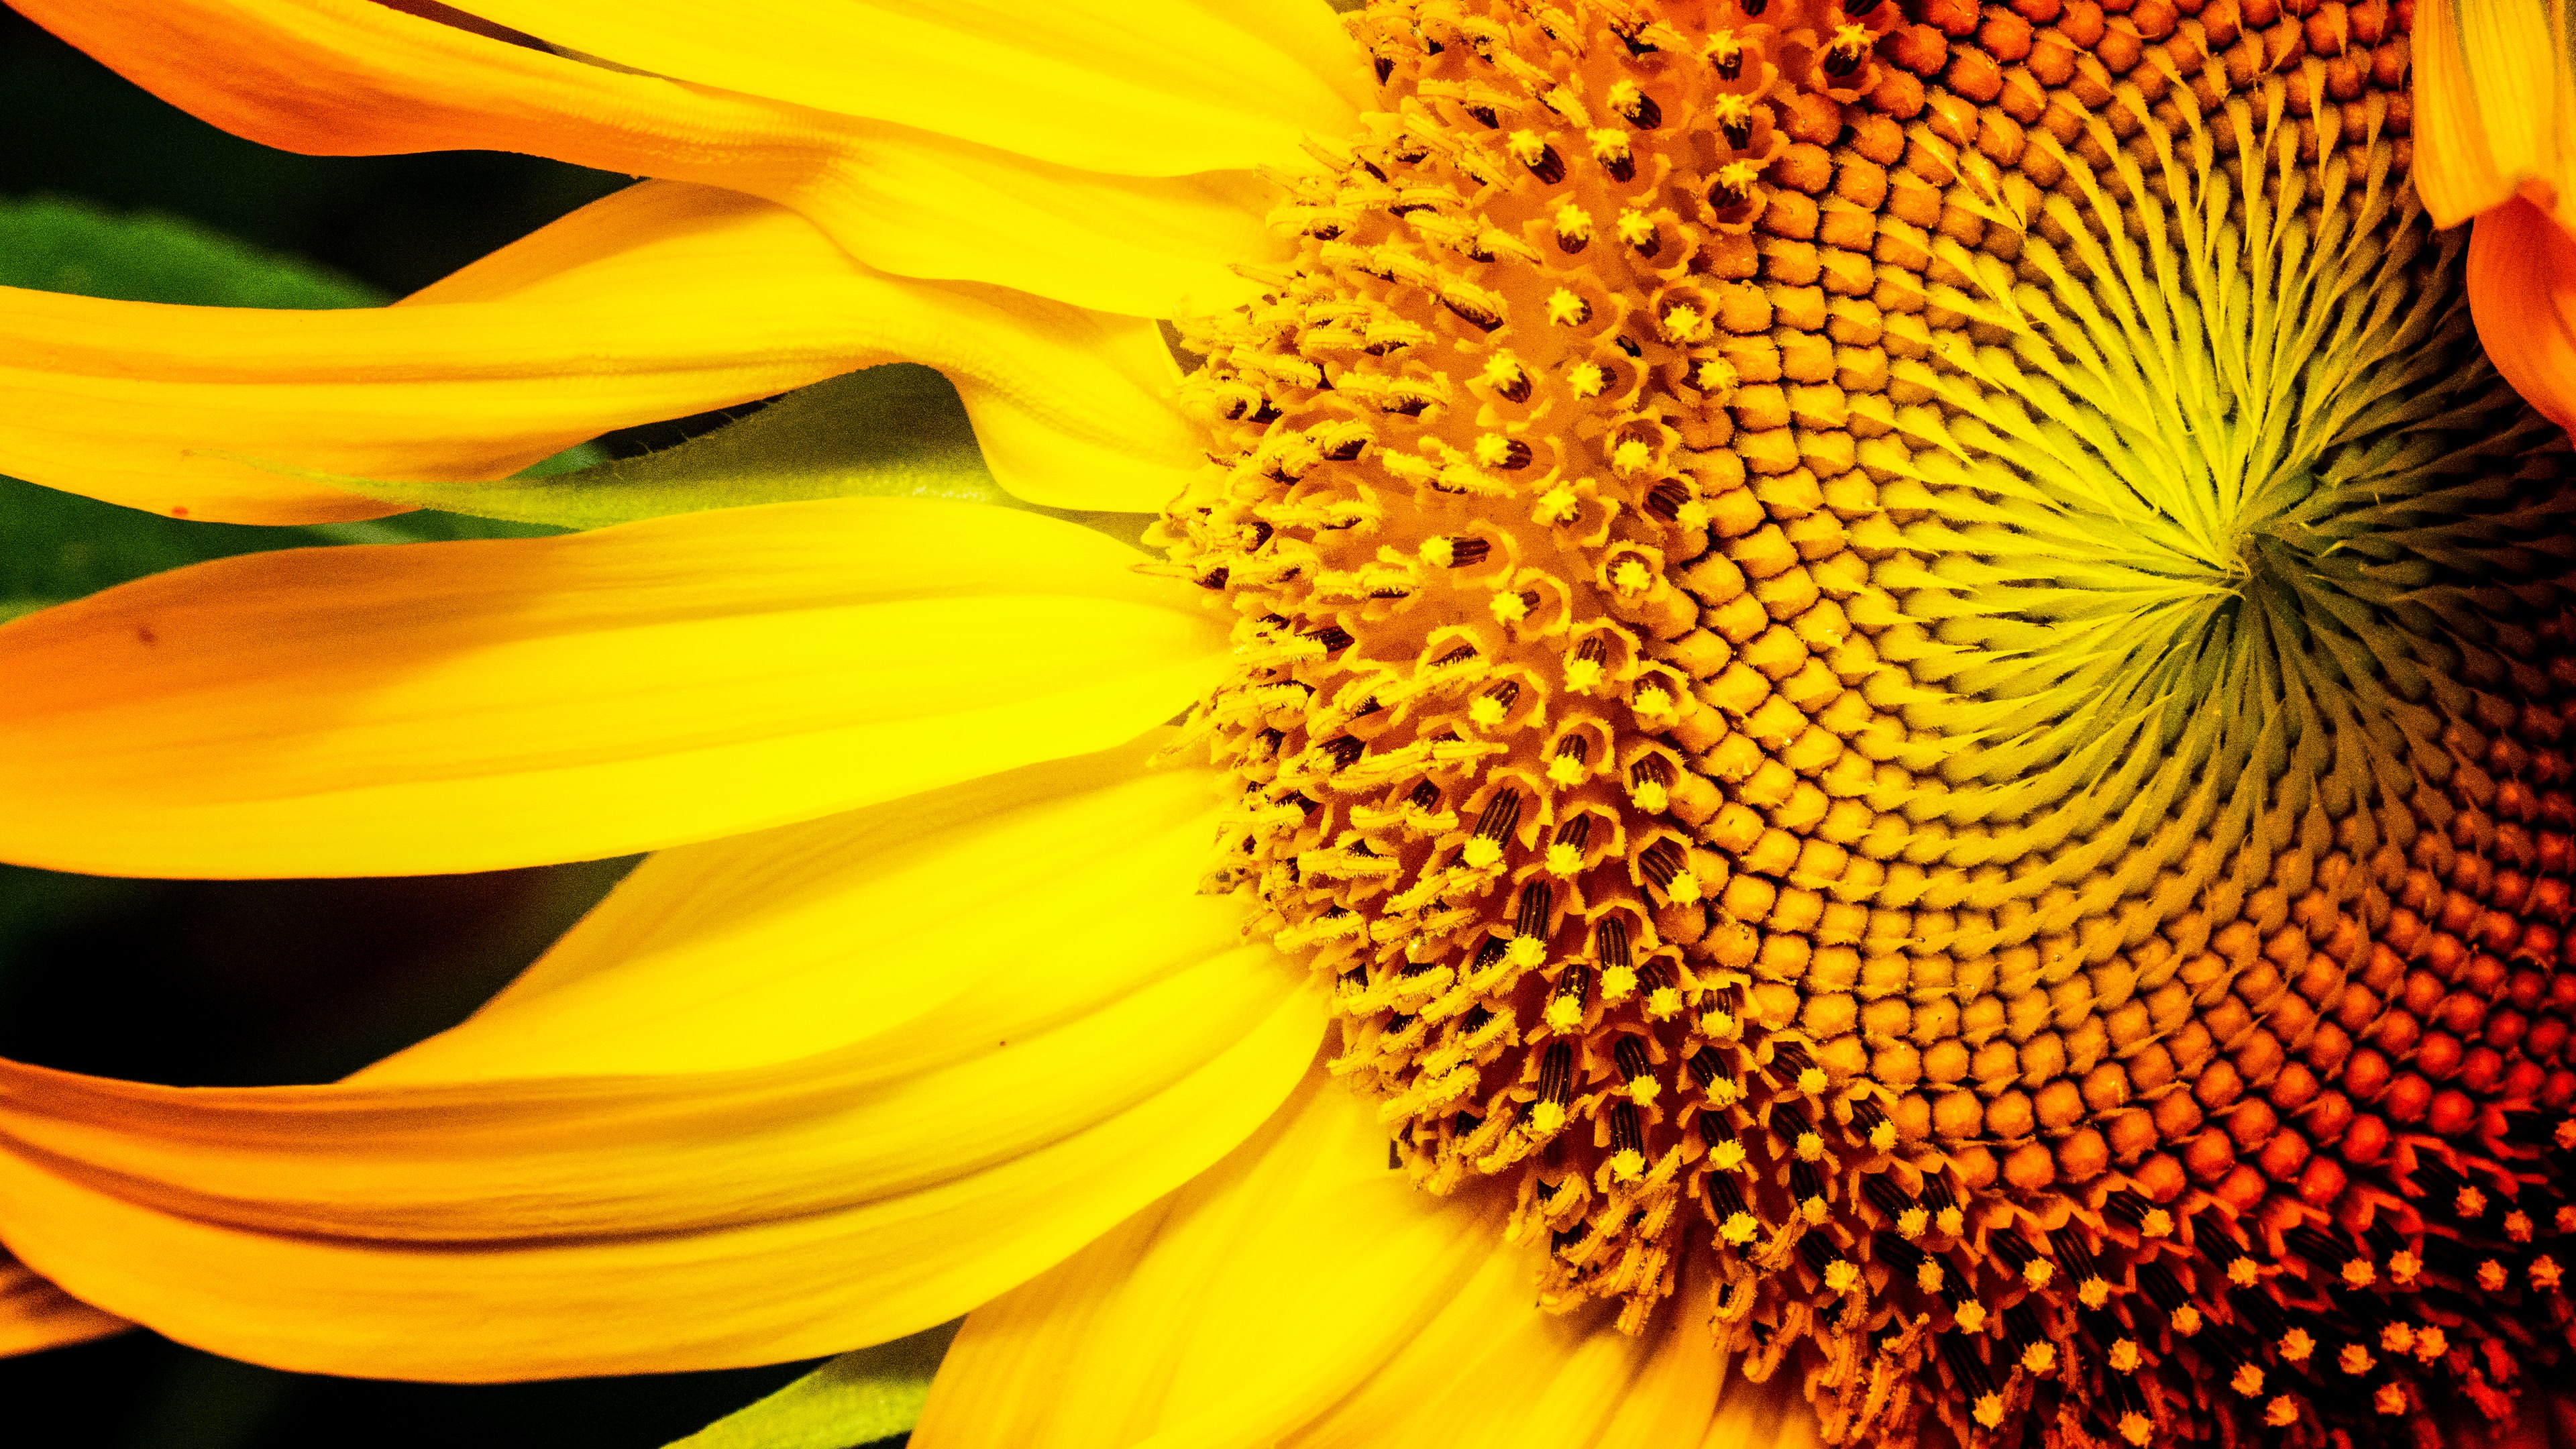 4k sunflowers wallpapers high quality | download free